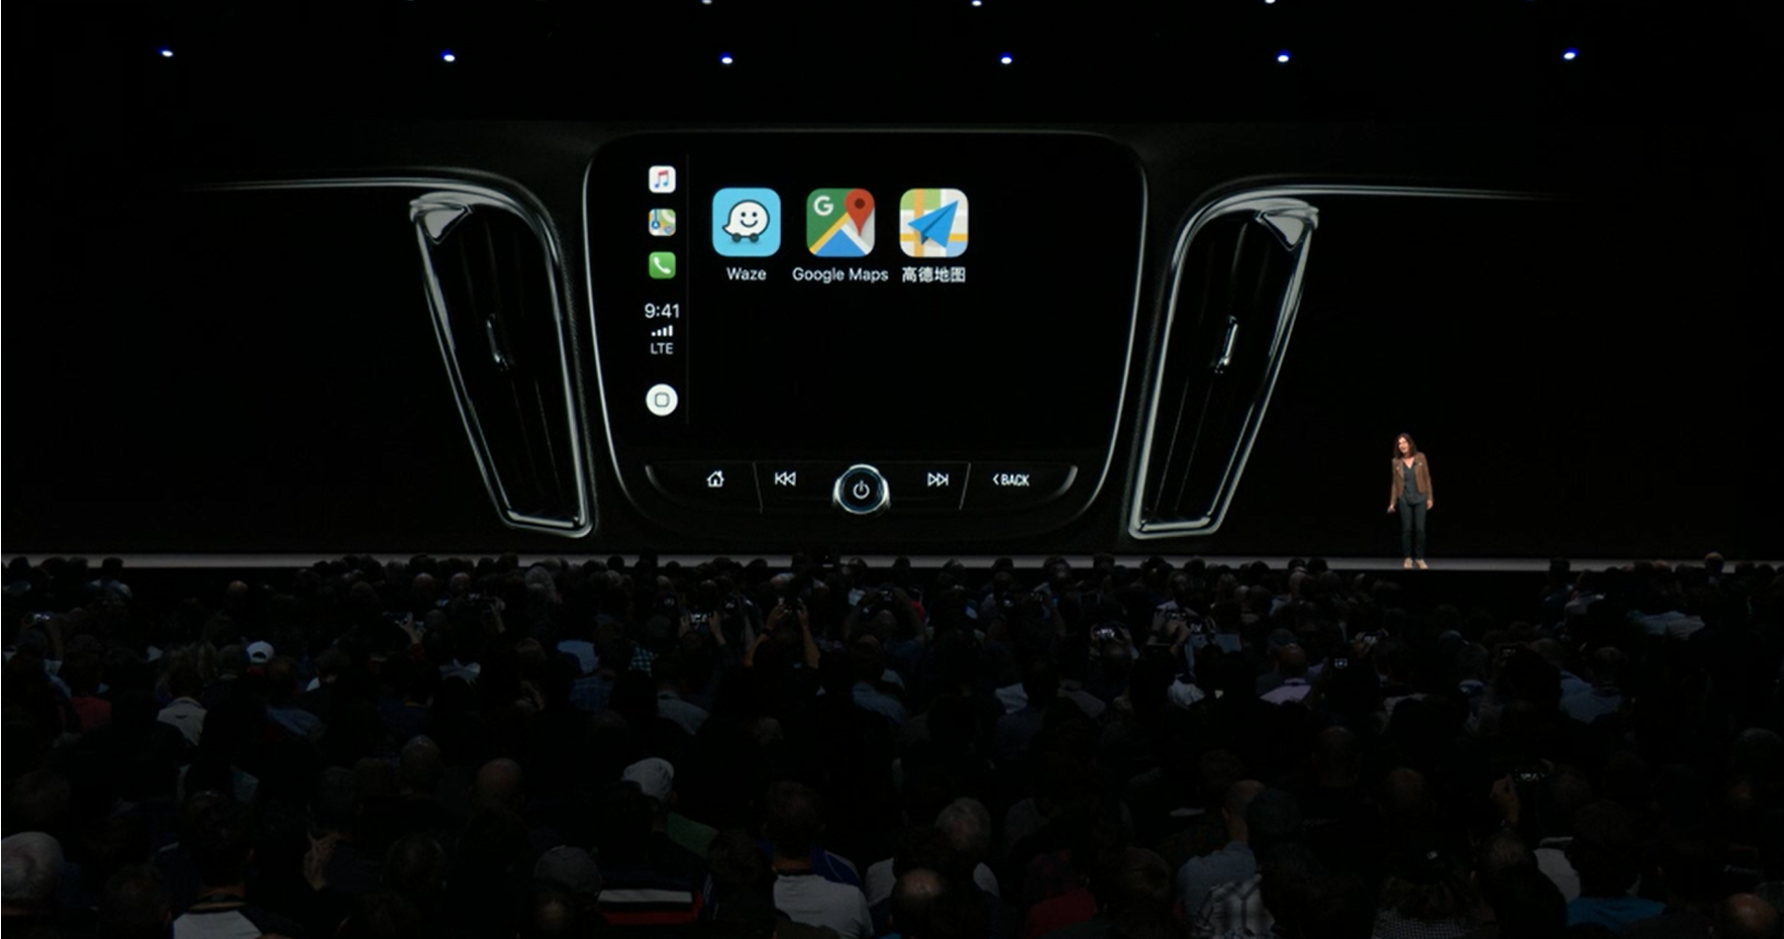 Apple finally allows third-party traffic apps in CarPlay